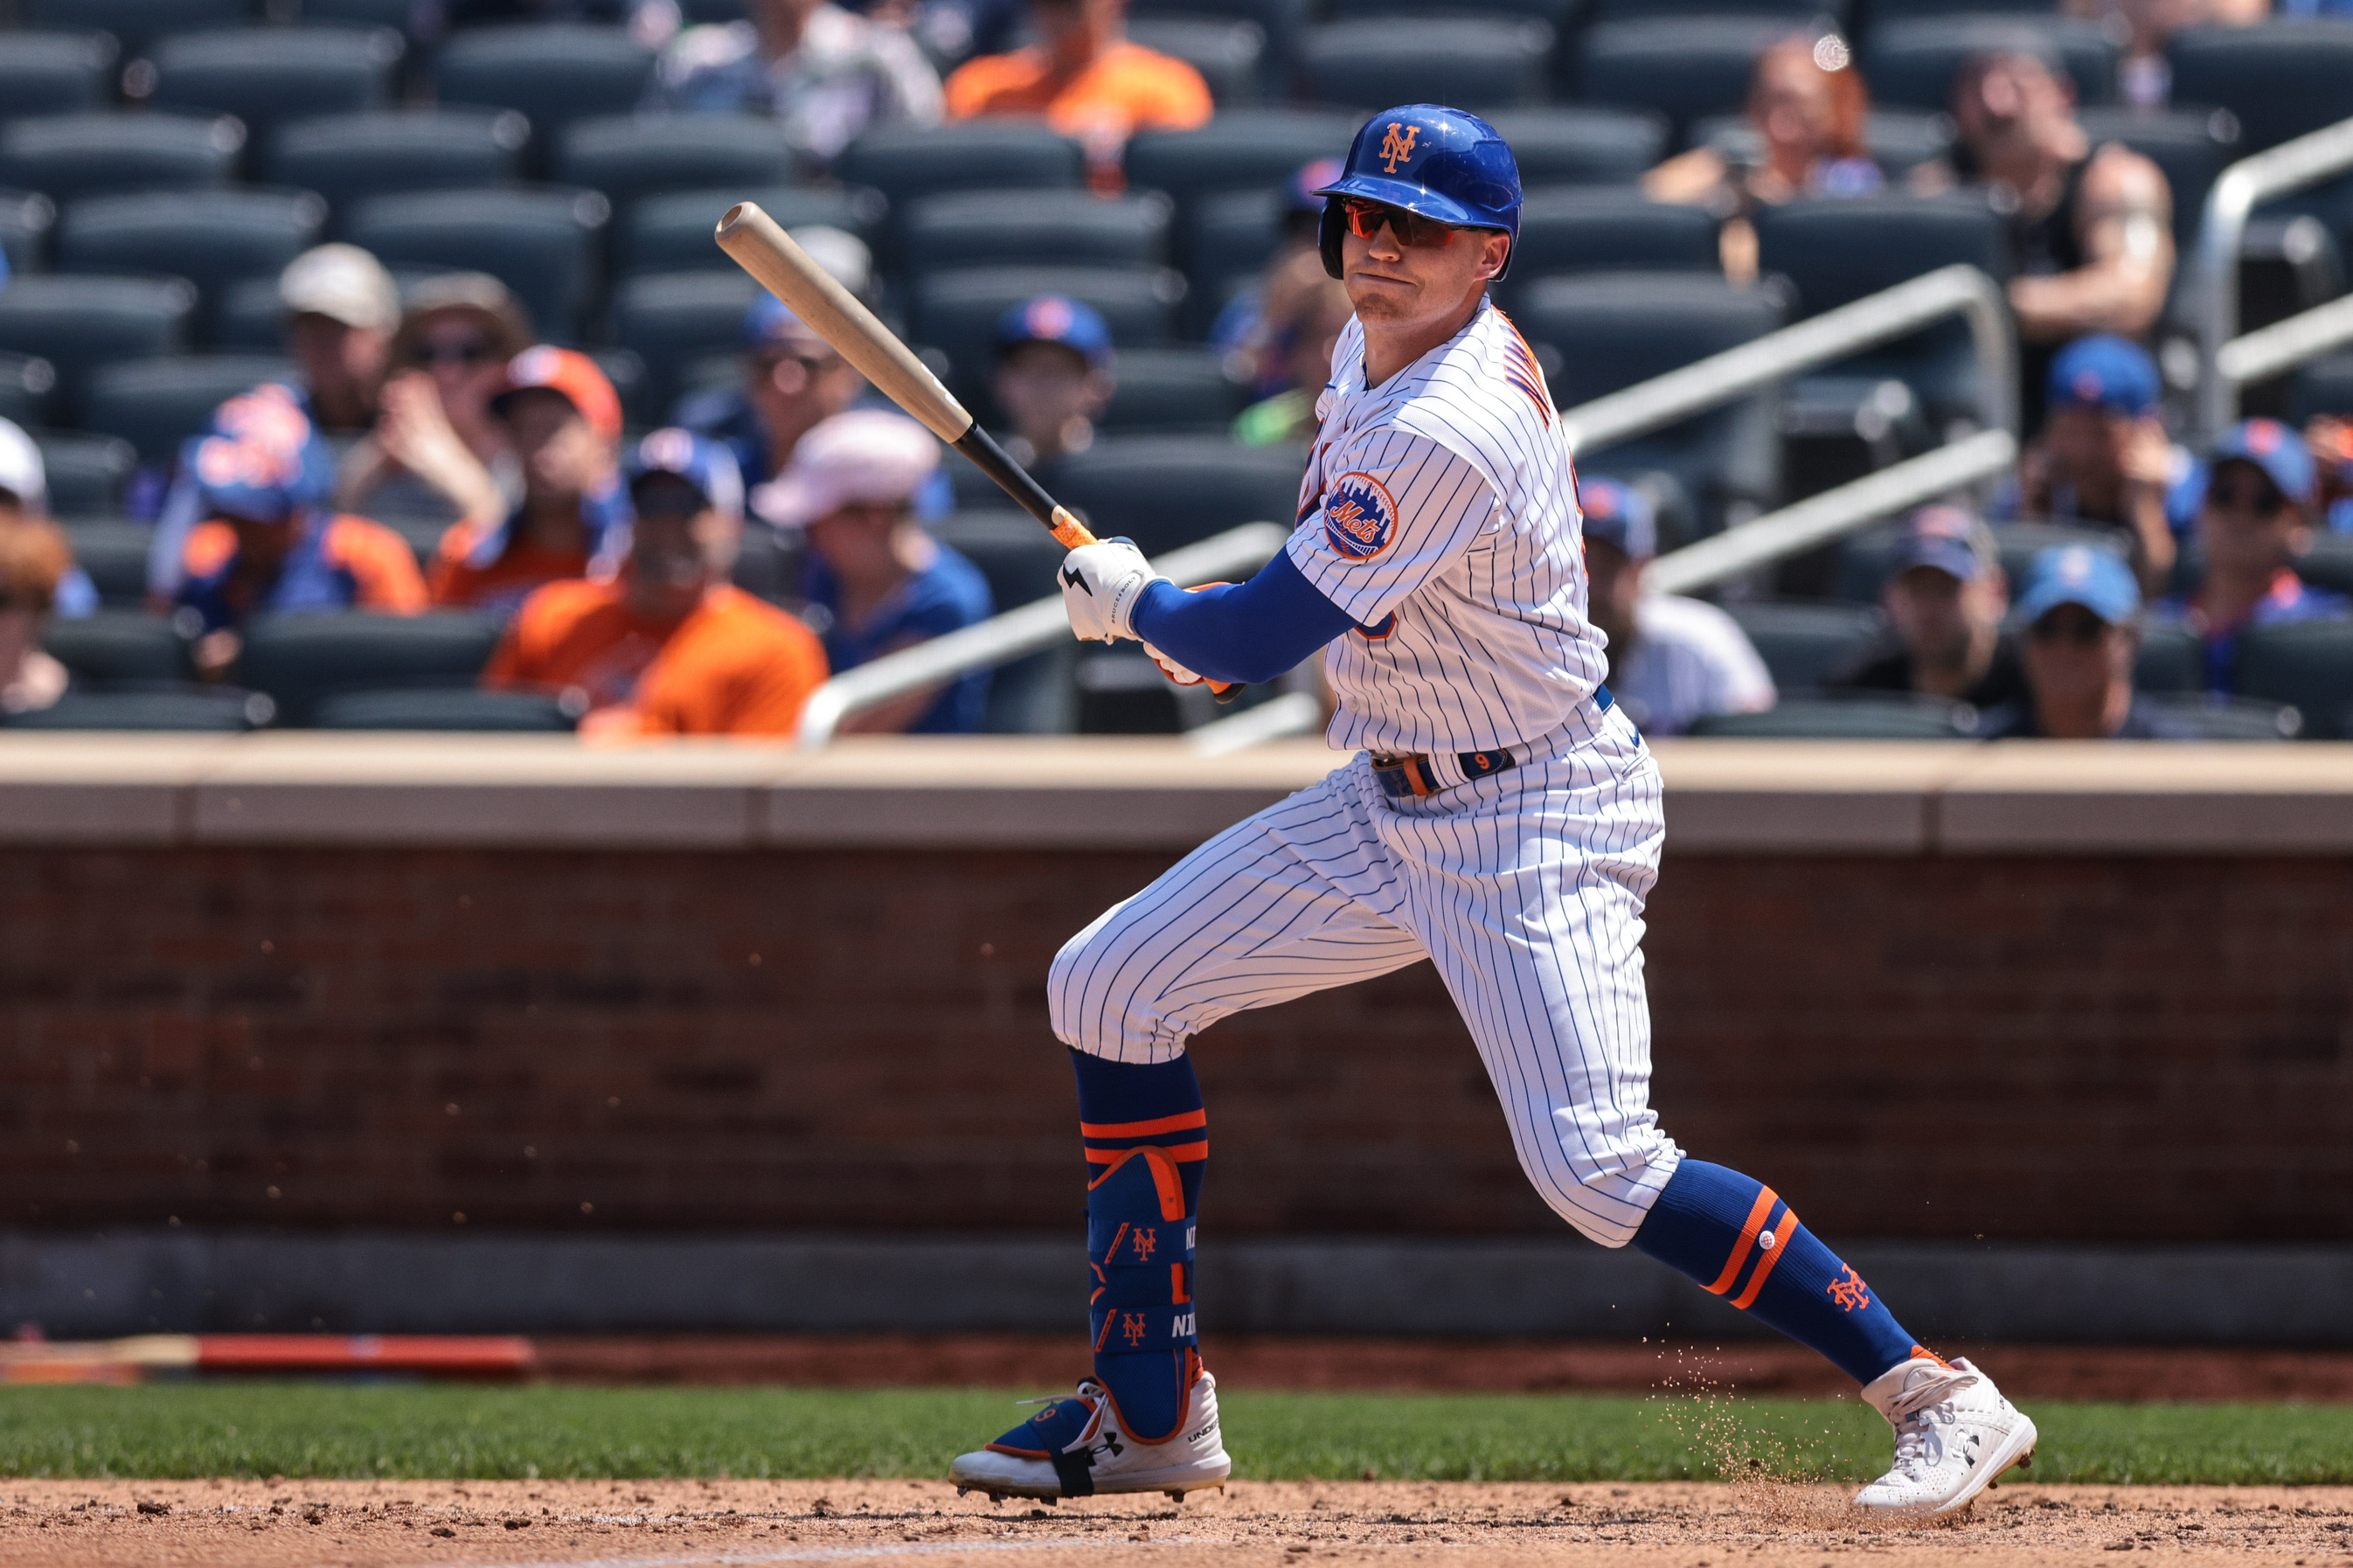 Los Angeles Dodgers vs New York Mets Prediction, 8/14/2021 MLB Pick, Tips and Odds